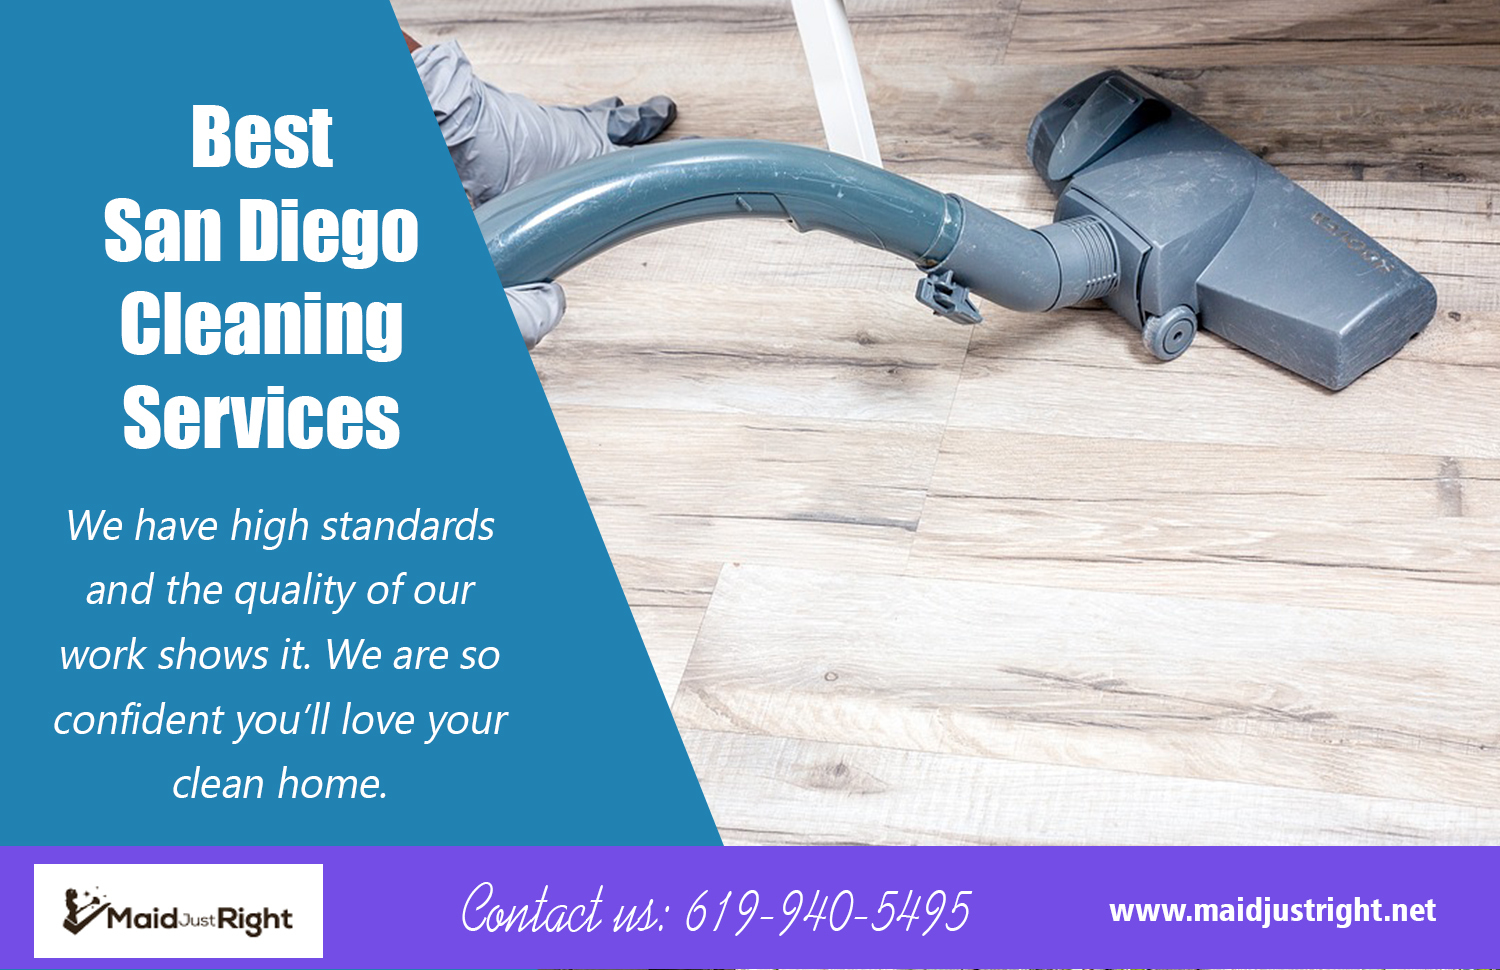 Best San Diego Cleaning Services | Call Us - 619-940-5495 | maidjustright.net